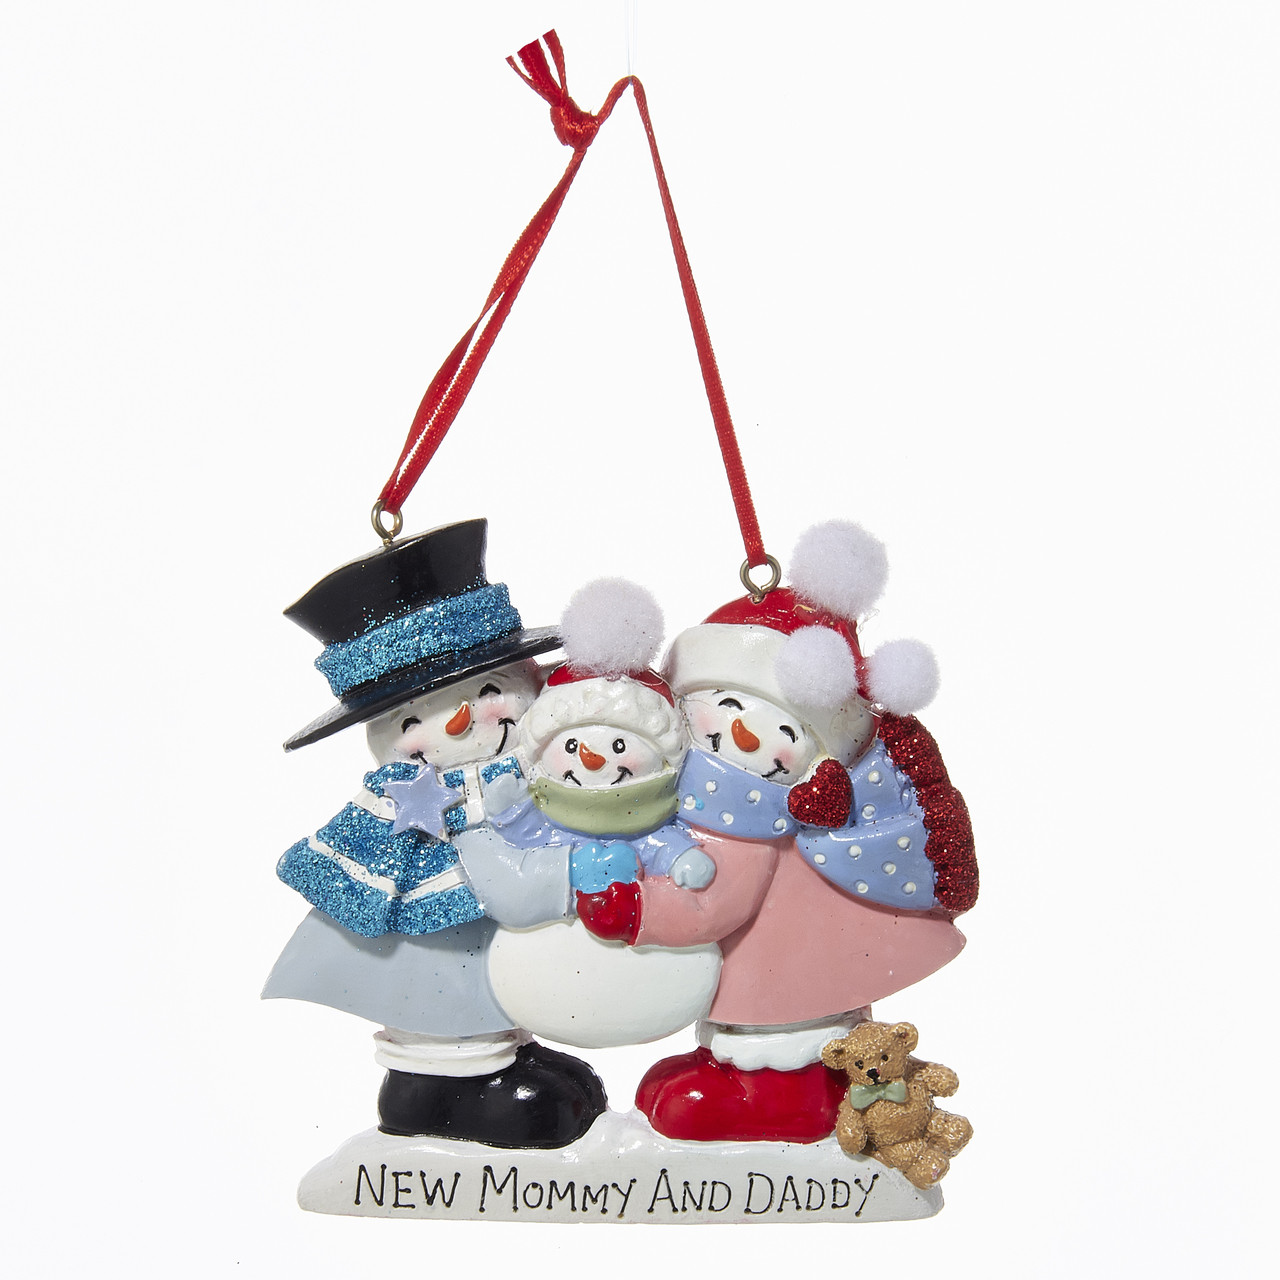 New Mommy And Daddy Personalized Ornament - Country Marketplace